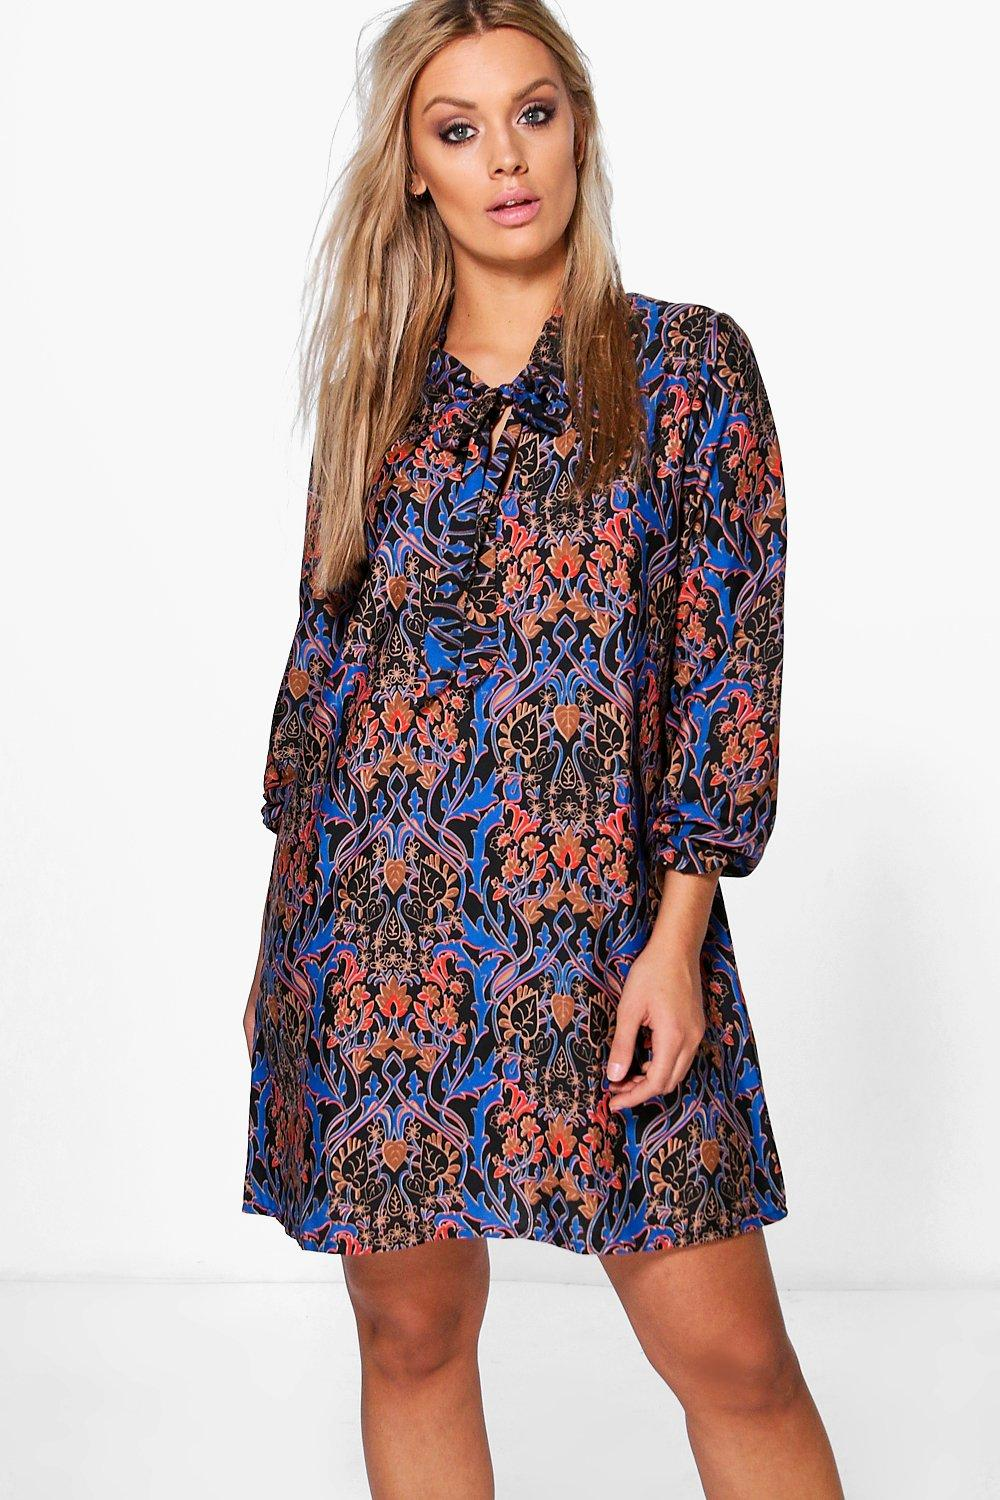 Plus Size Retro Dresses Plus Lucy Tie Front Printed Shirt Dress multi $25.00 AT vintagedancer.com